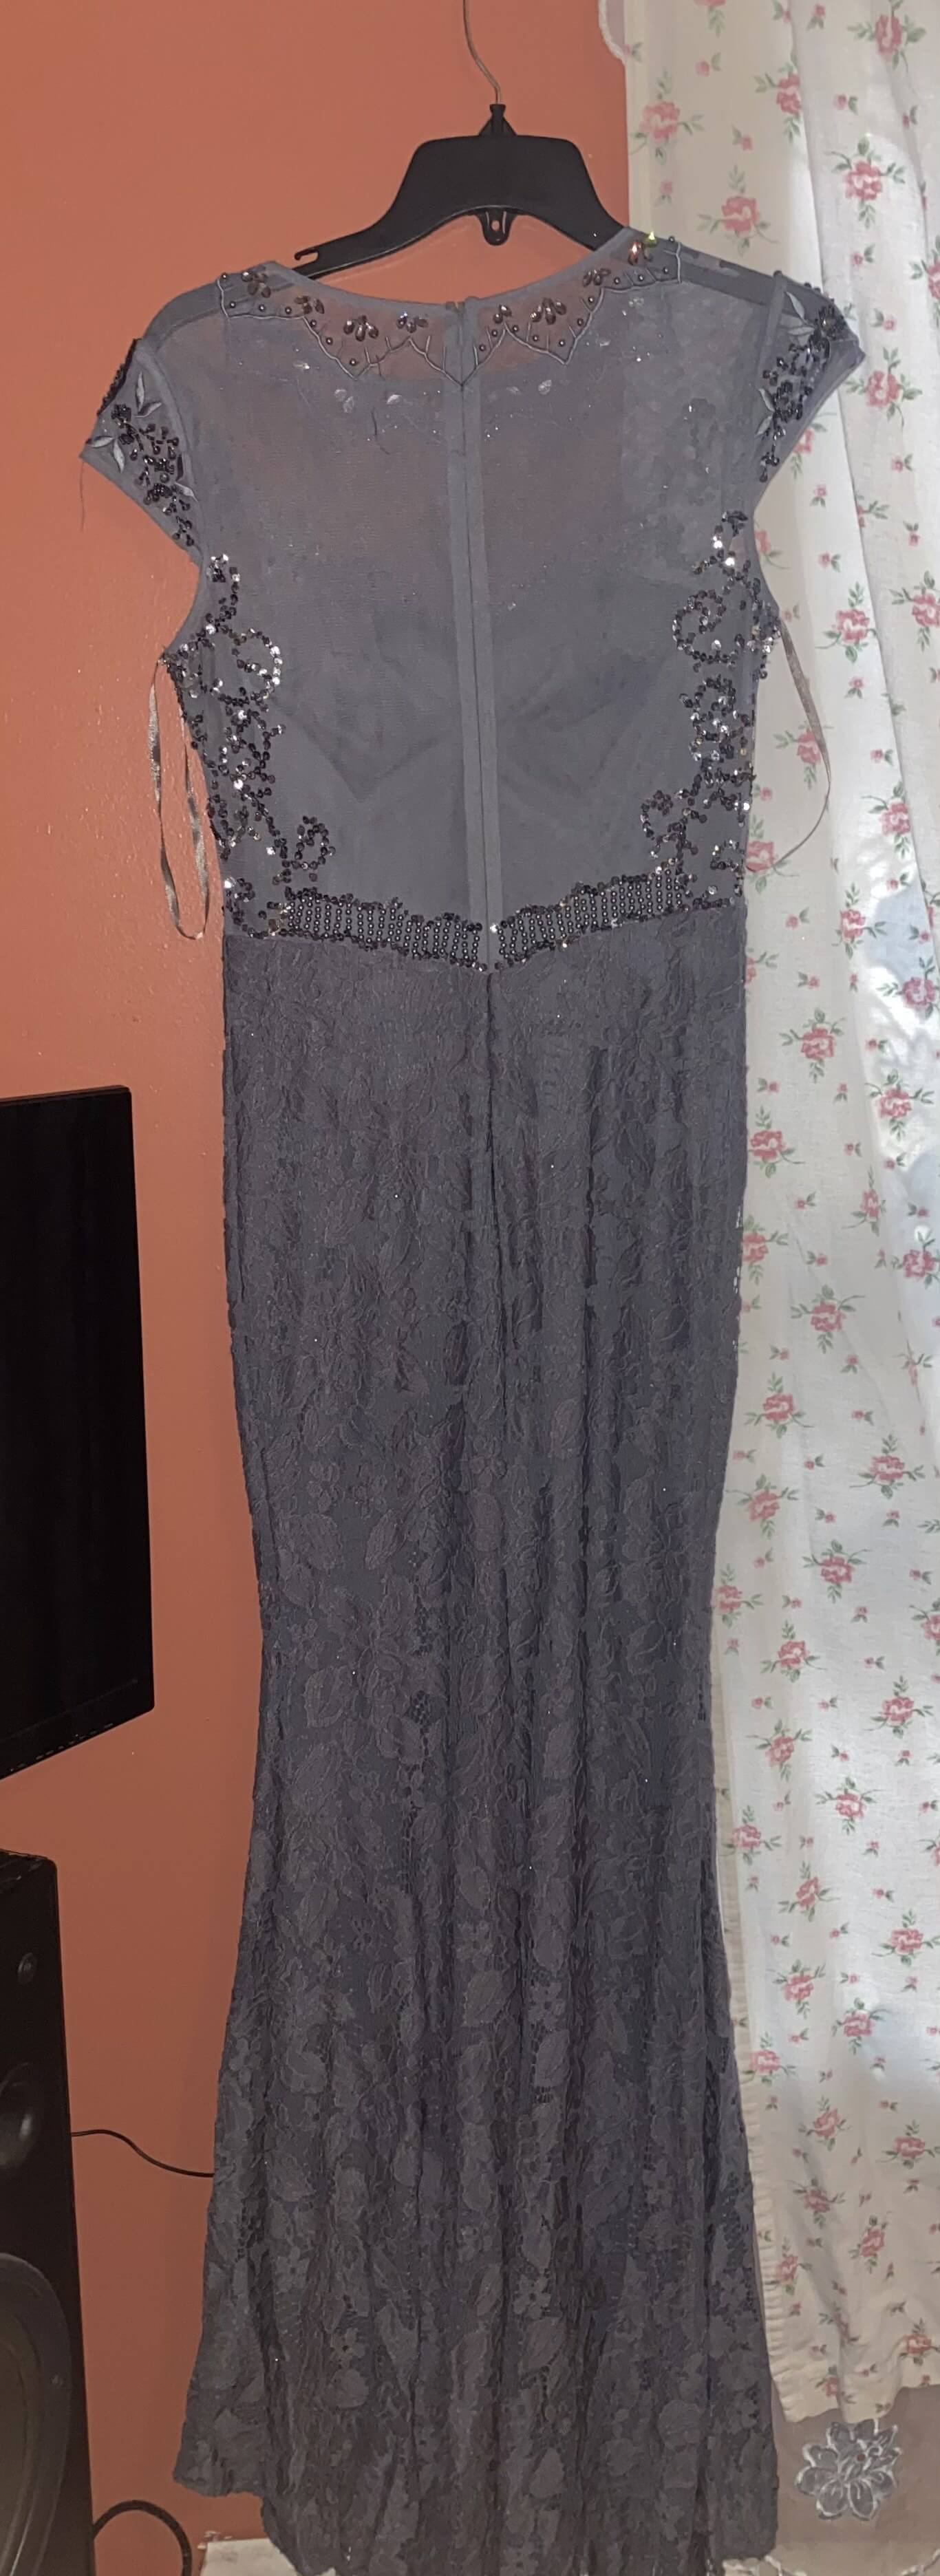 Silver Size 6 Train Dress on Queenly